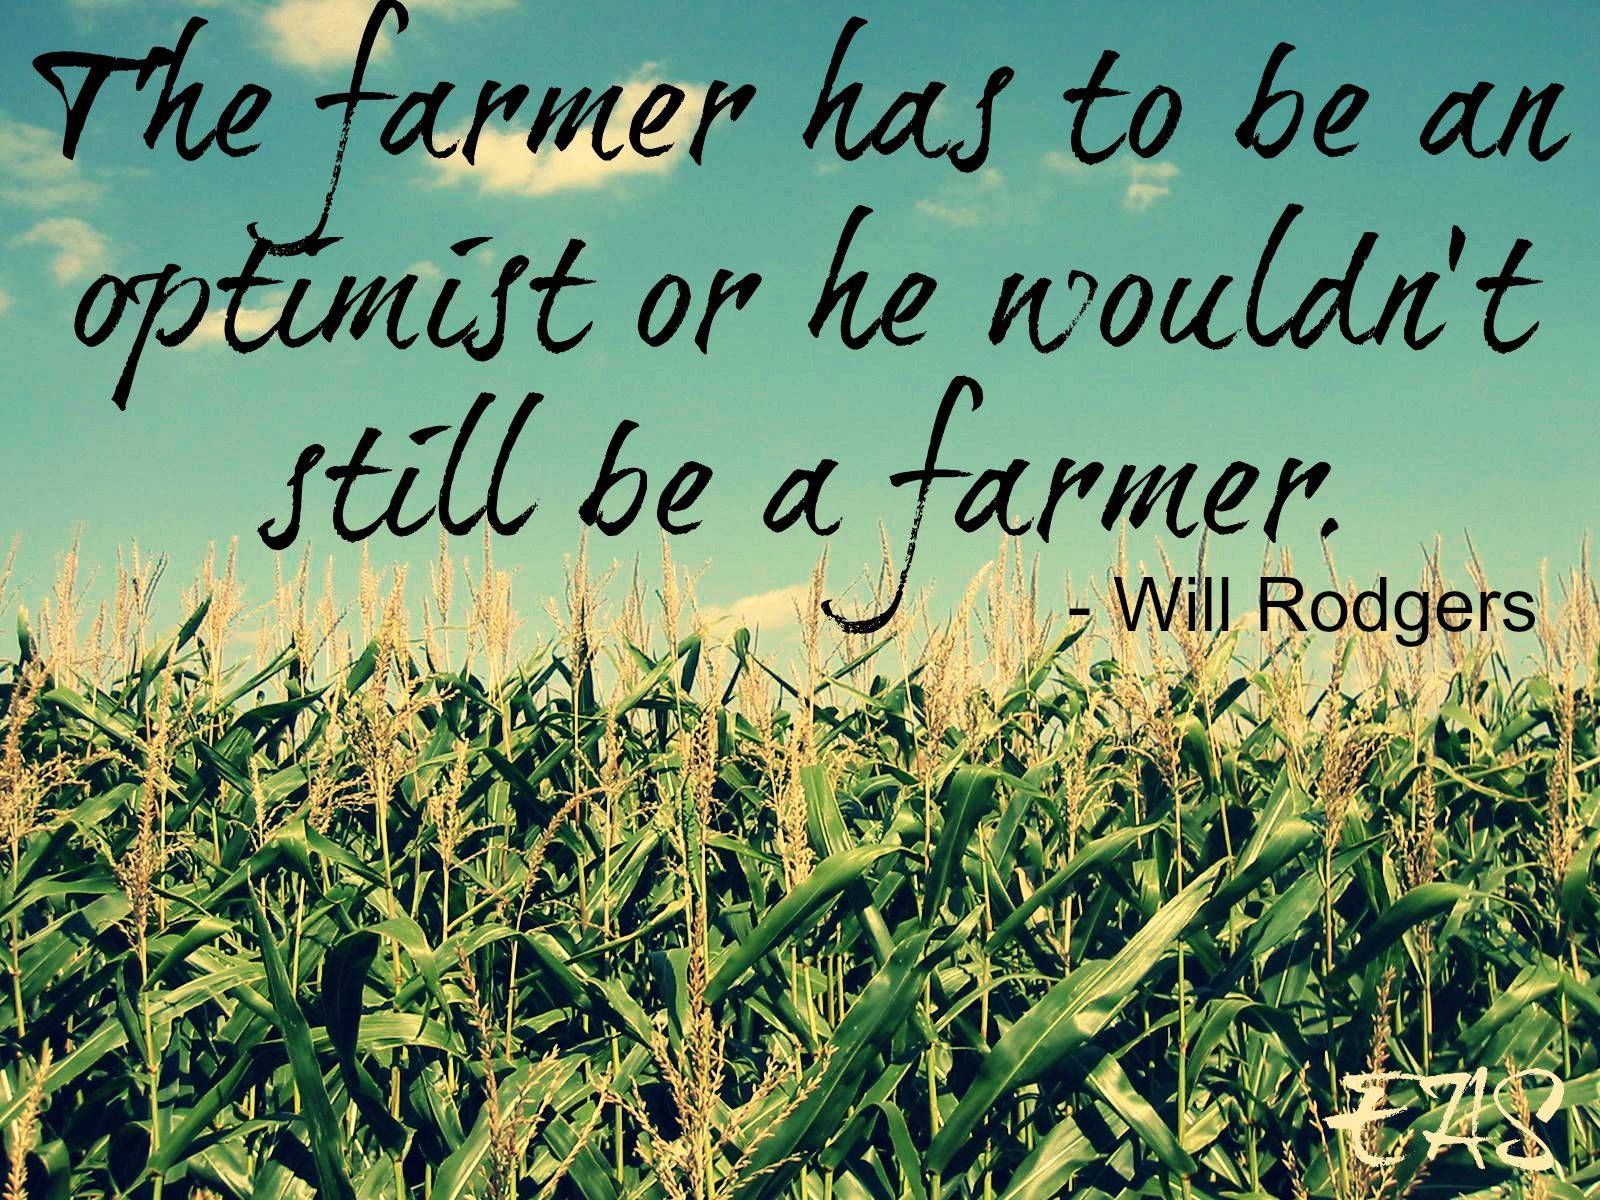 Farmer Quotes The Farmer Has To Be An Optimist Or He Wouldn't Still Be A Farmer .